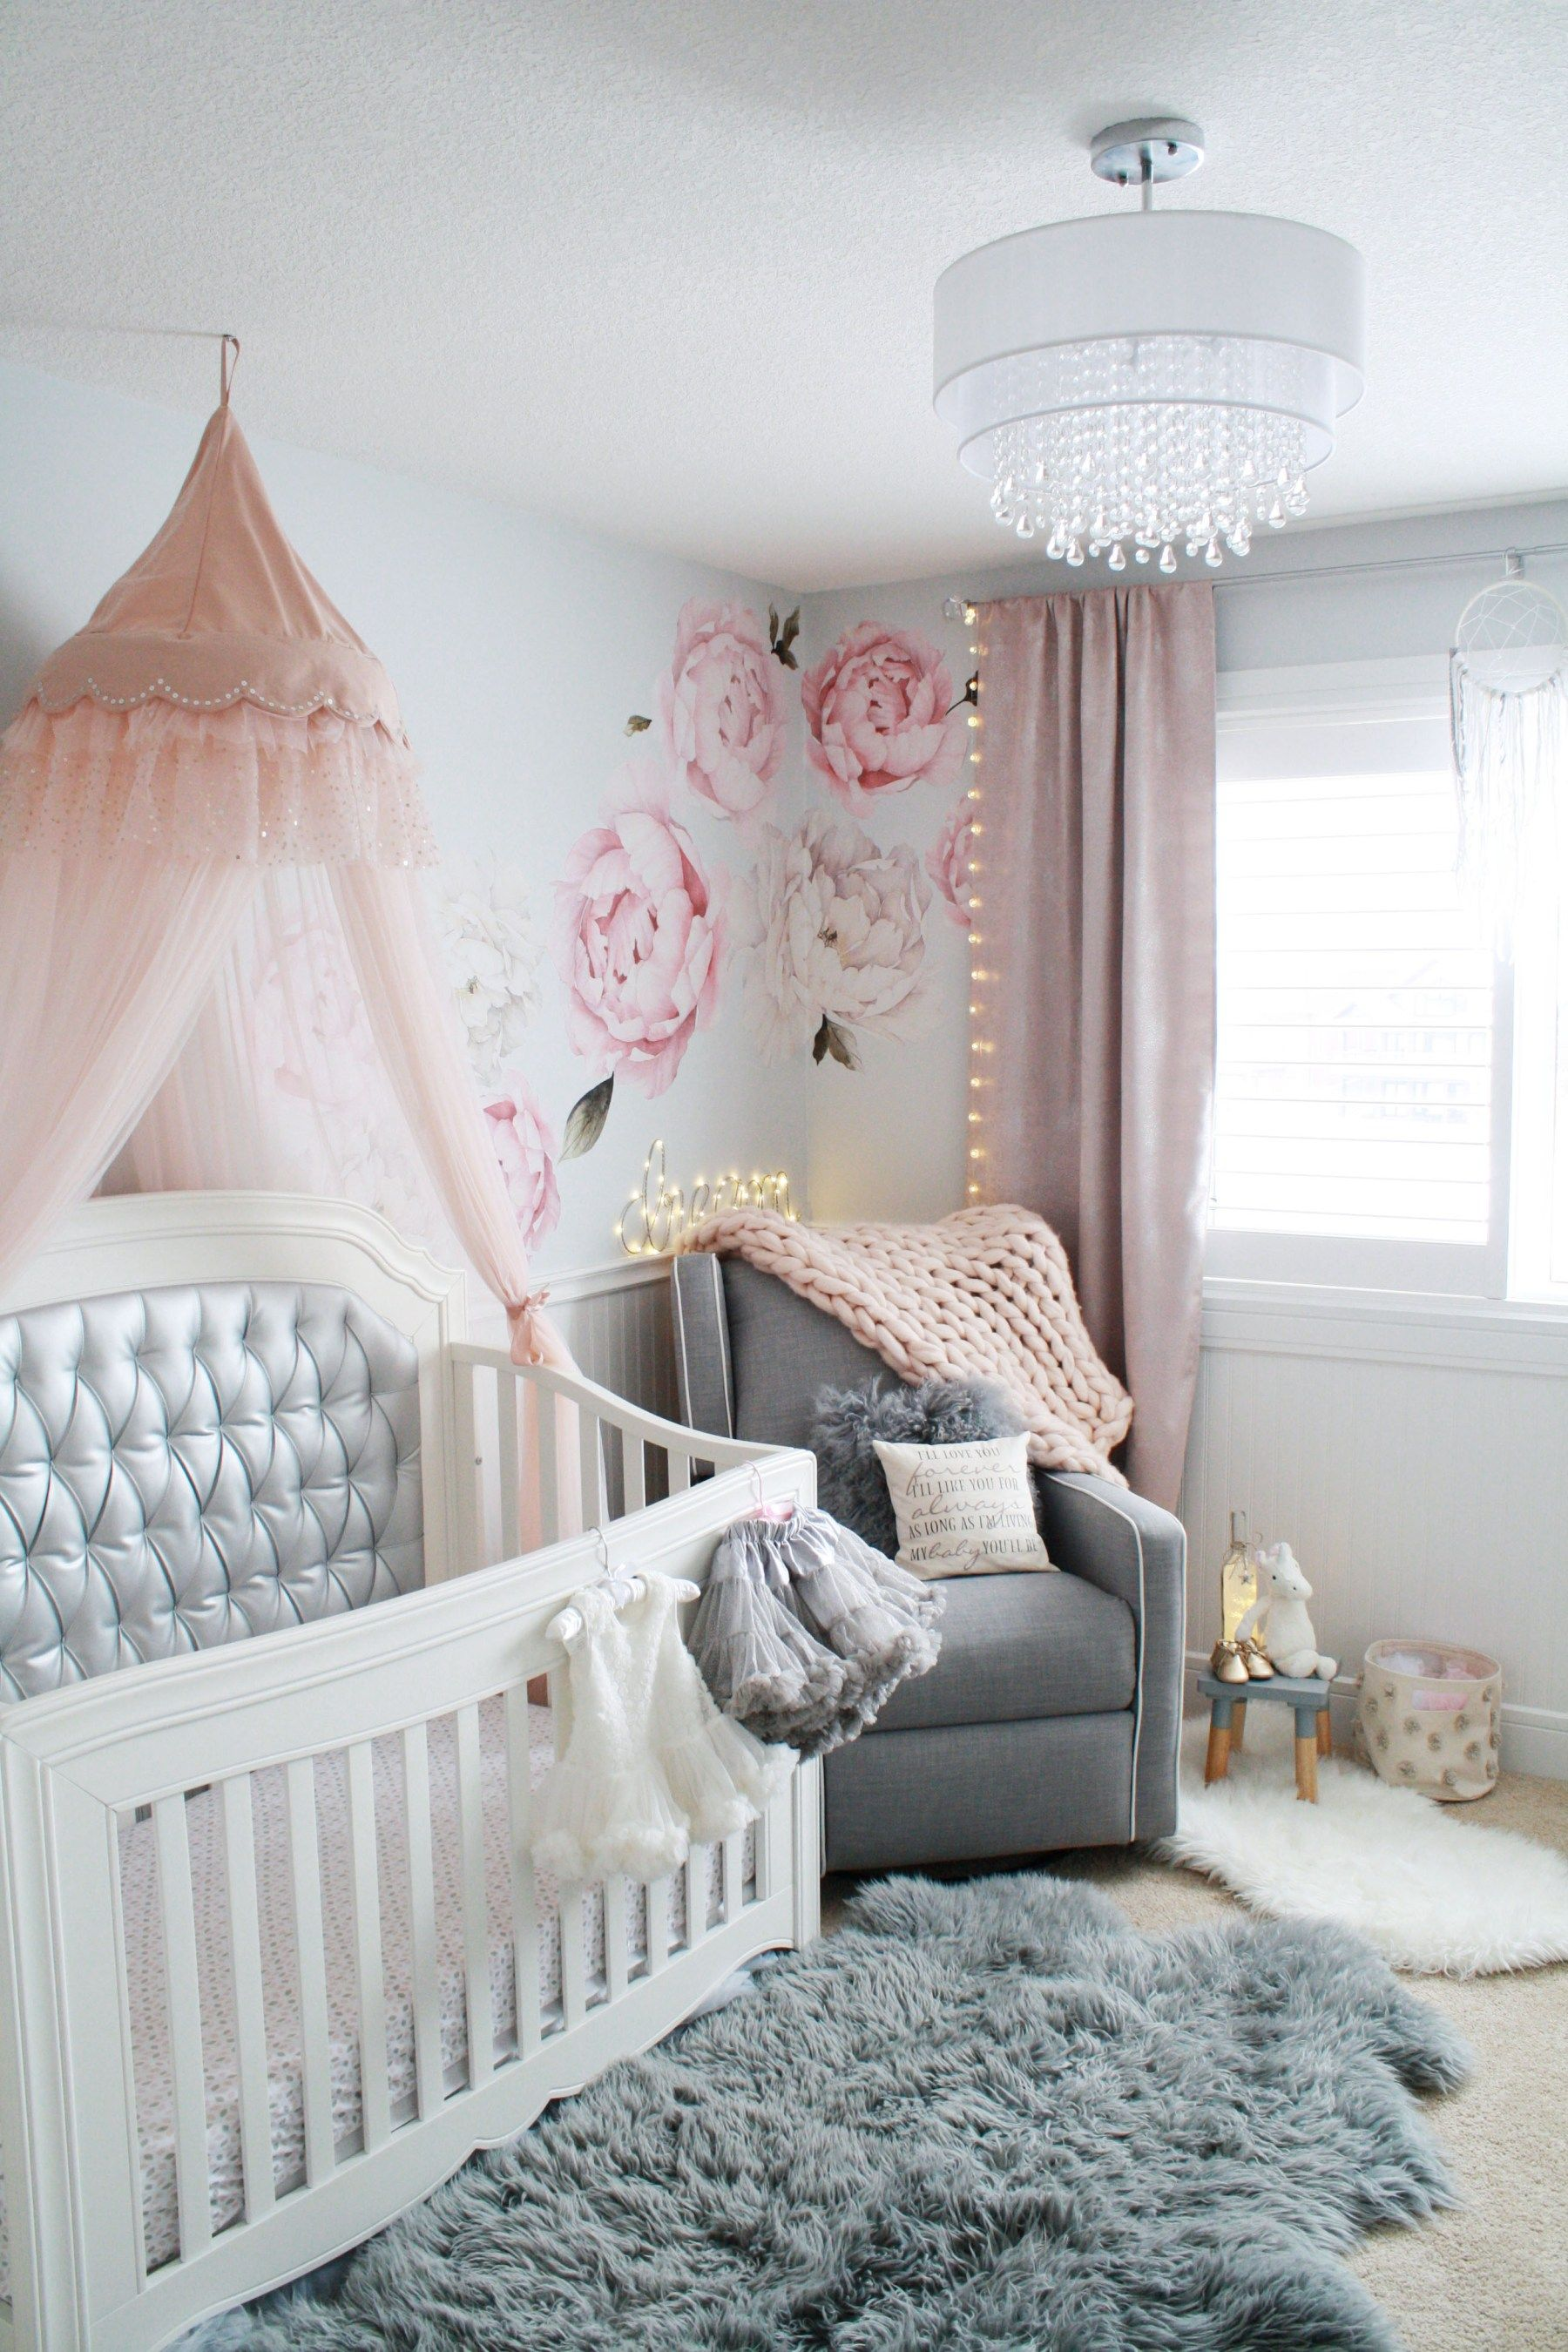 Baby girl pink and gray nursery with